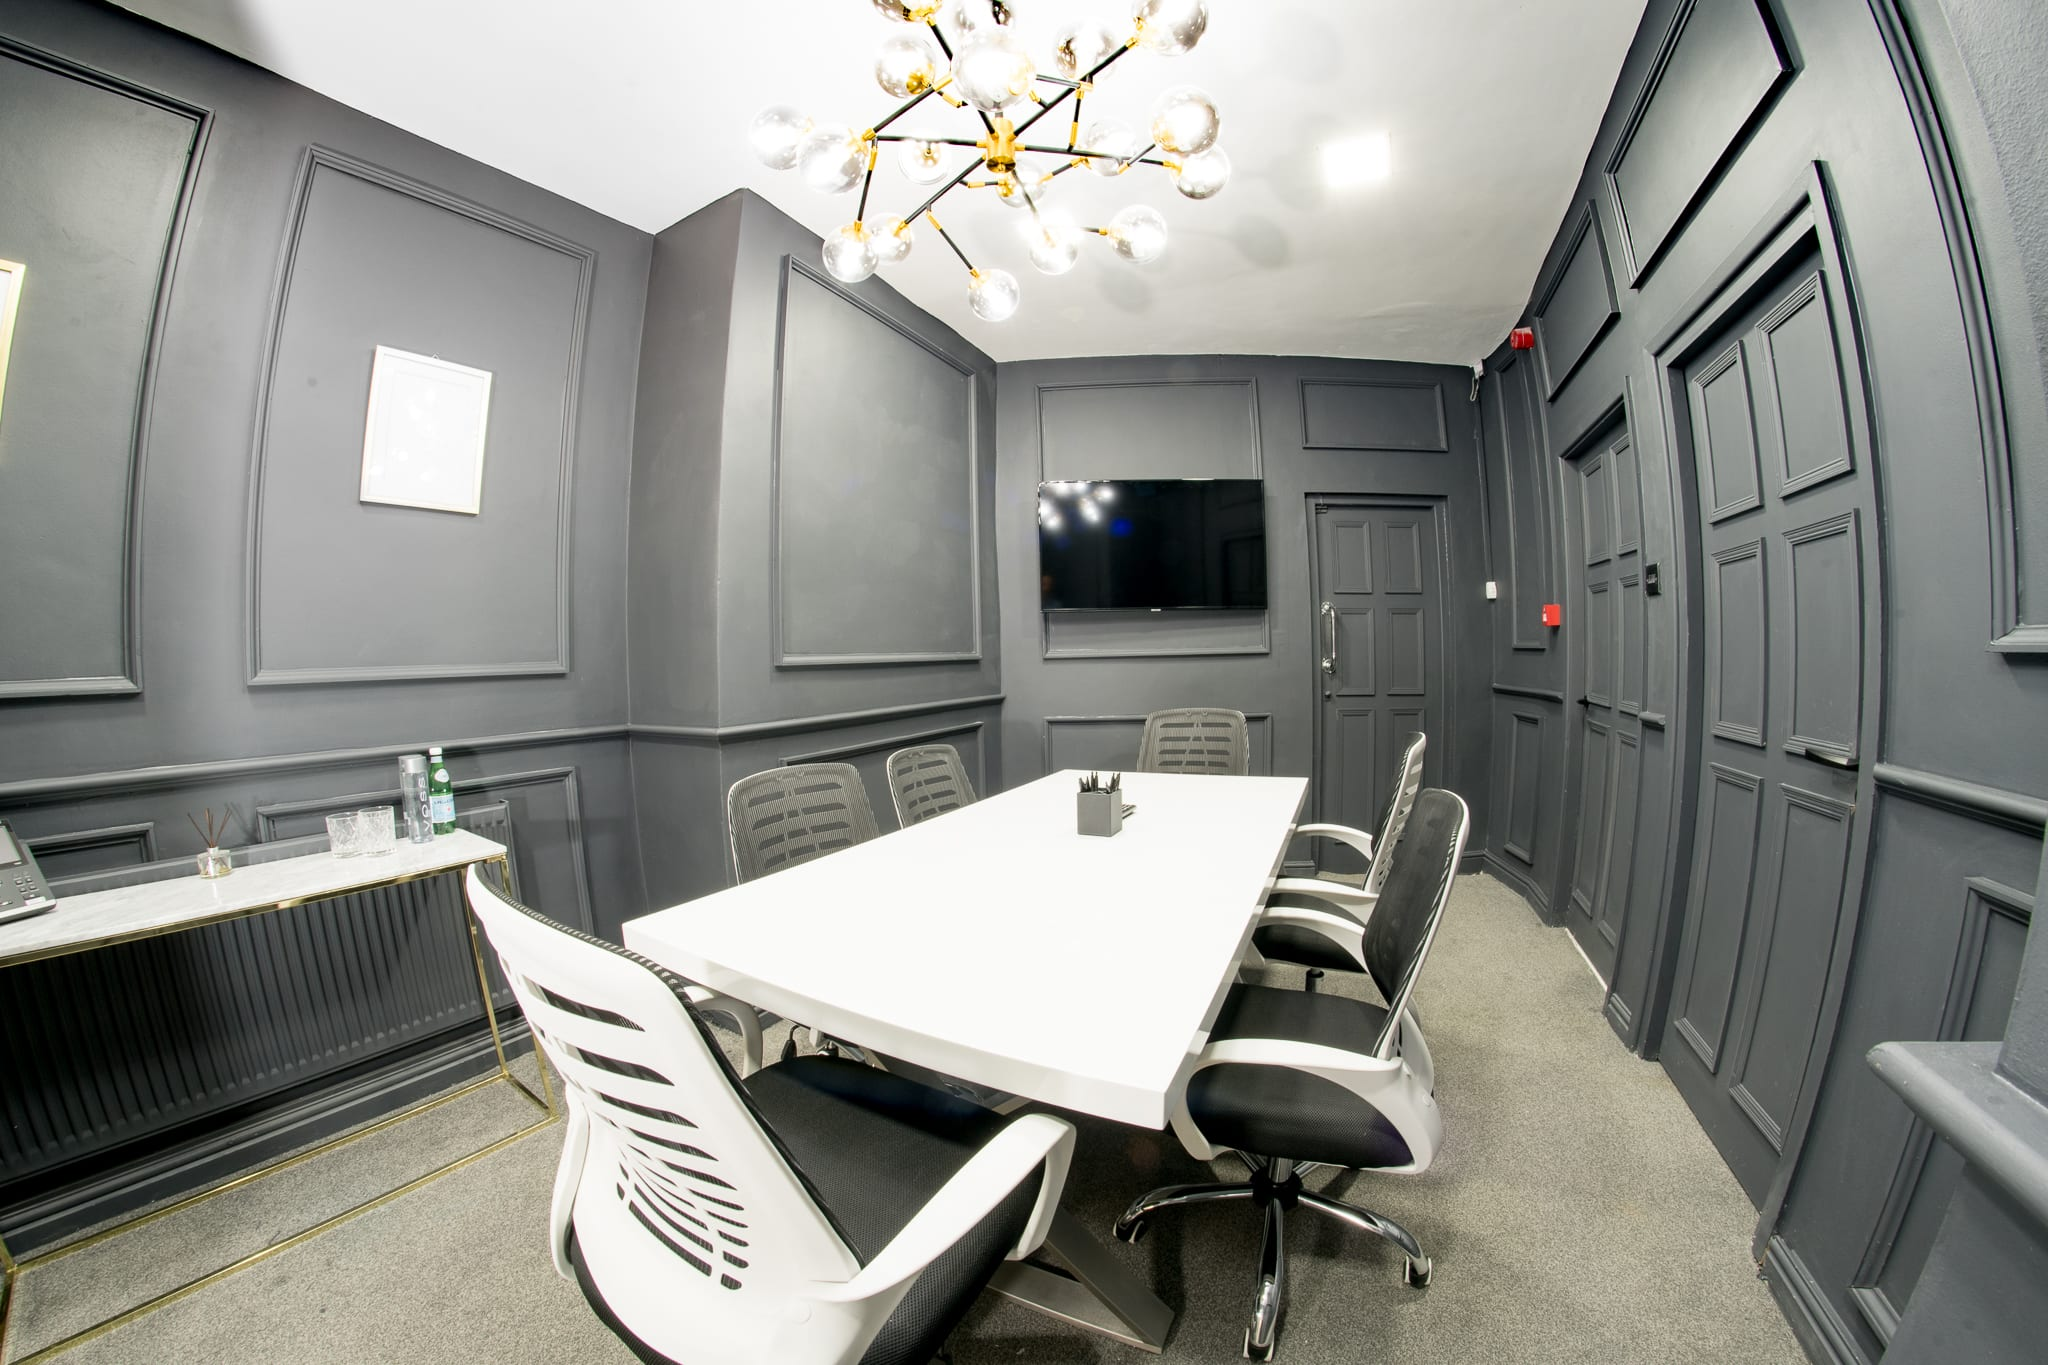 Manchester Office Space - Hliton House Room 4